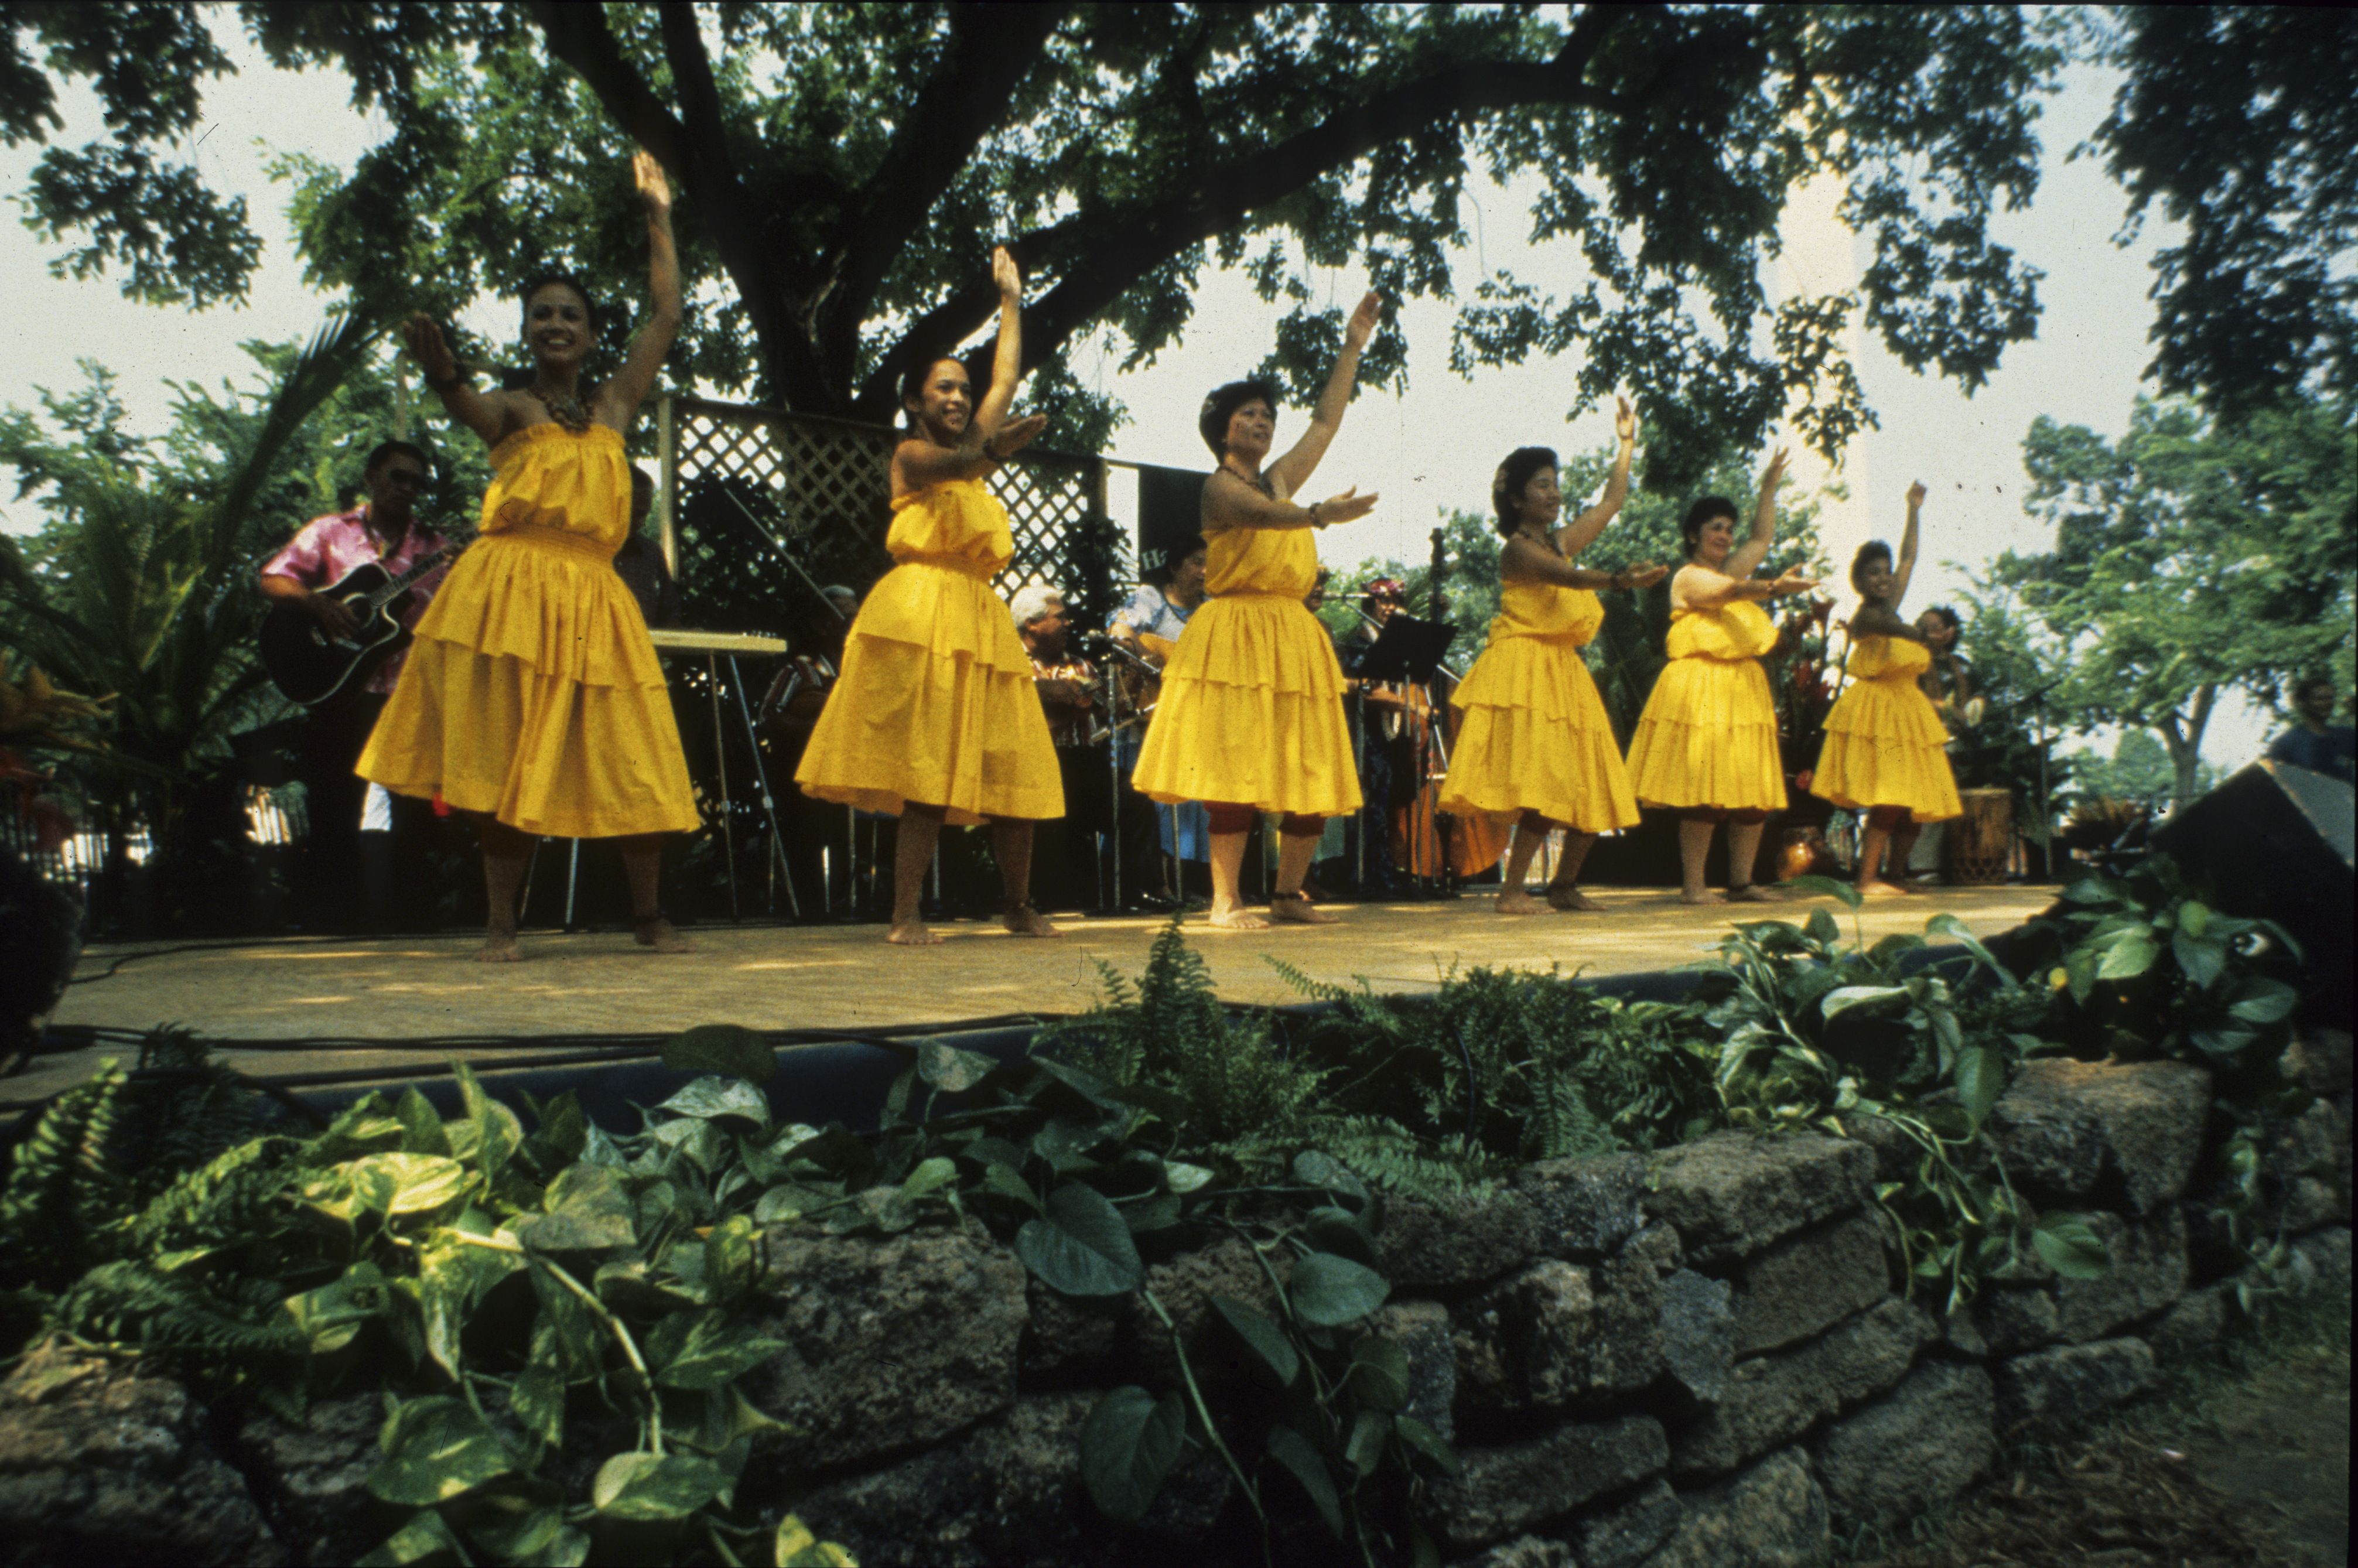 On a raised platform stage, six hula dancers in yellow dresses with arms raised.